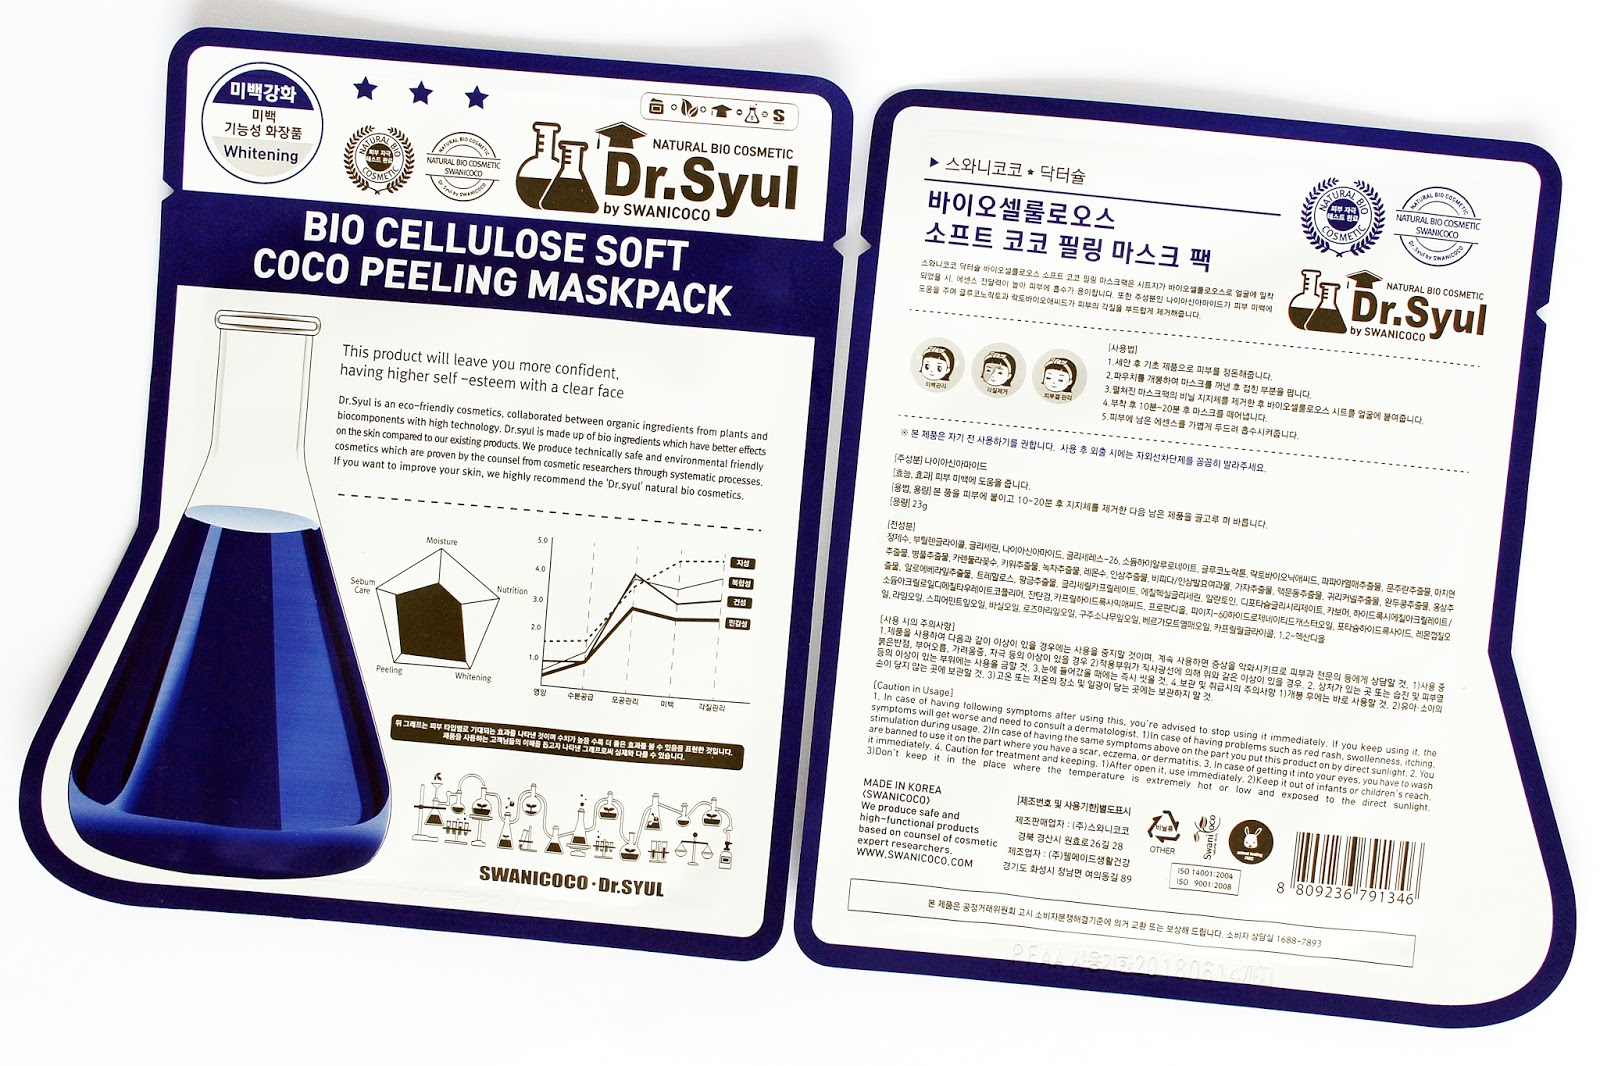 Dr. Syul by Swanicoco, Bio Cellulose Soft Coco Peeling Mask Pack